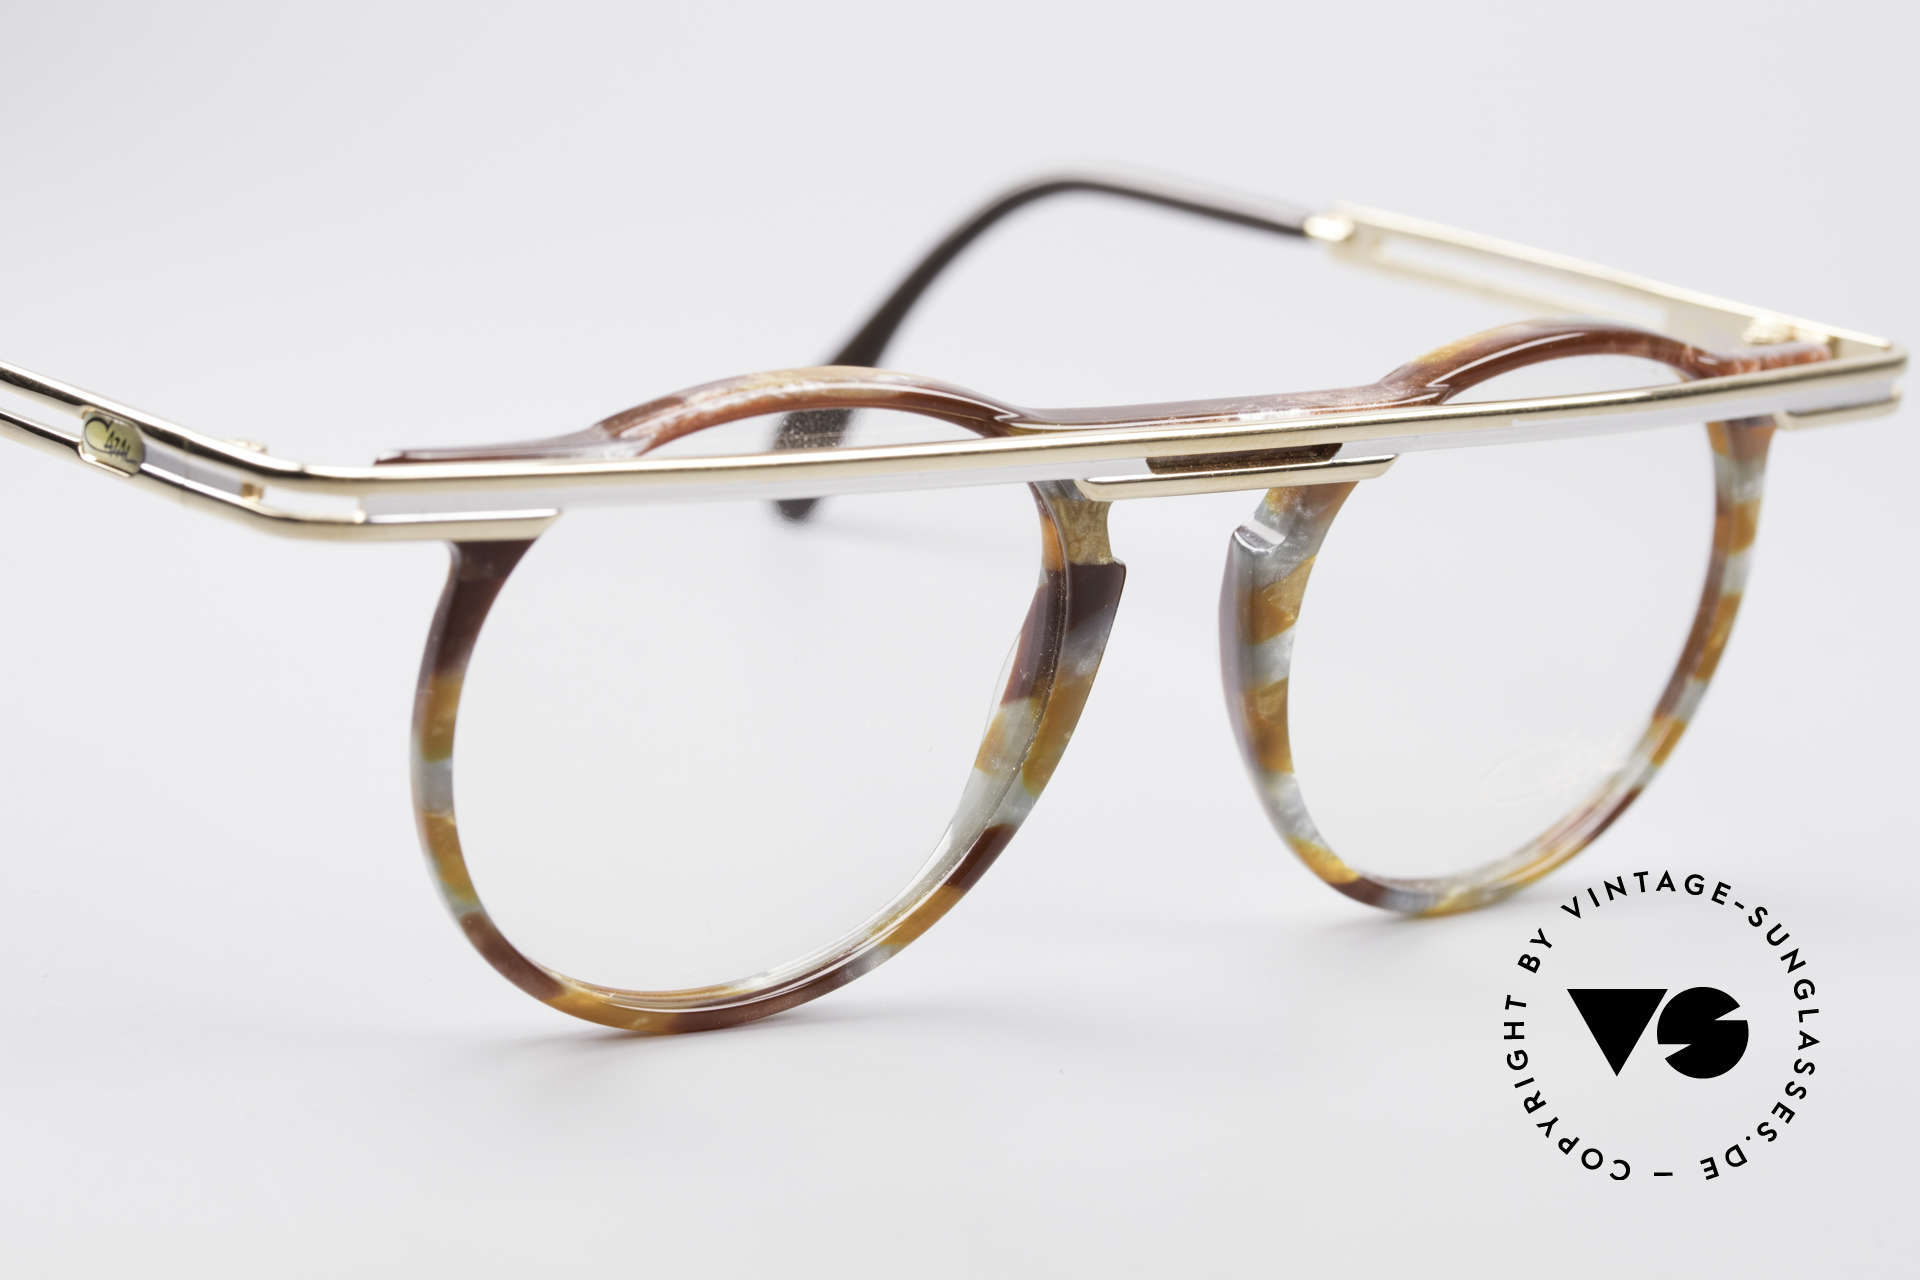 Cazal 648 90's Cari Zalloni Vintage Glasses, unworn, NOS (like all our rare vintage Cazal glasses), Made for Men and Women